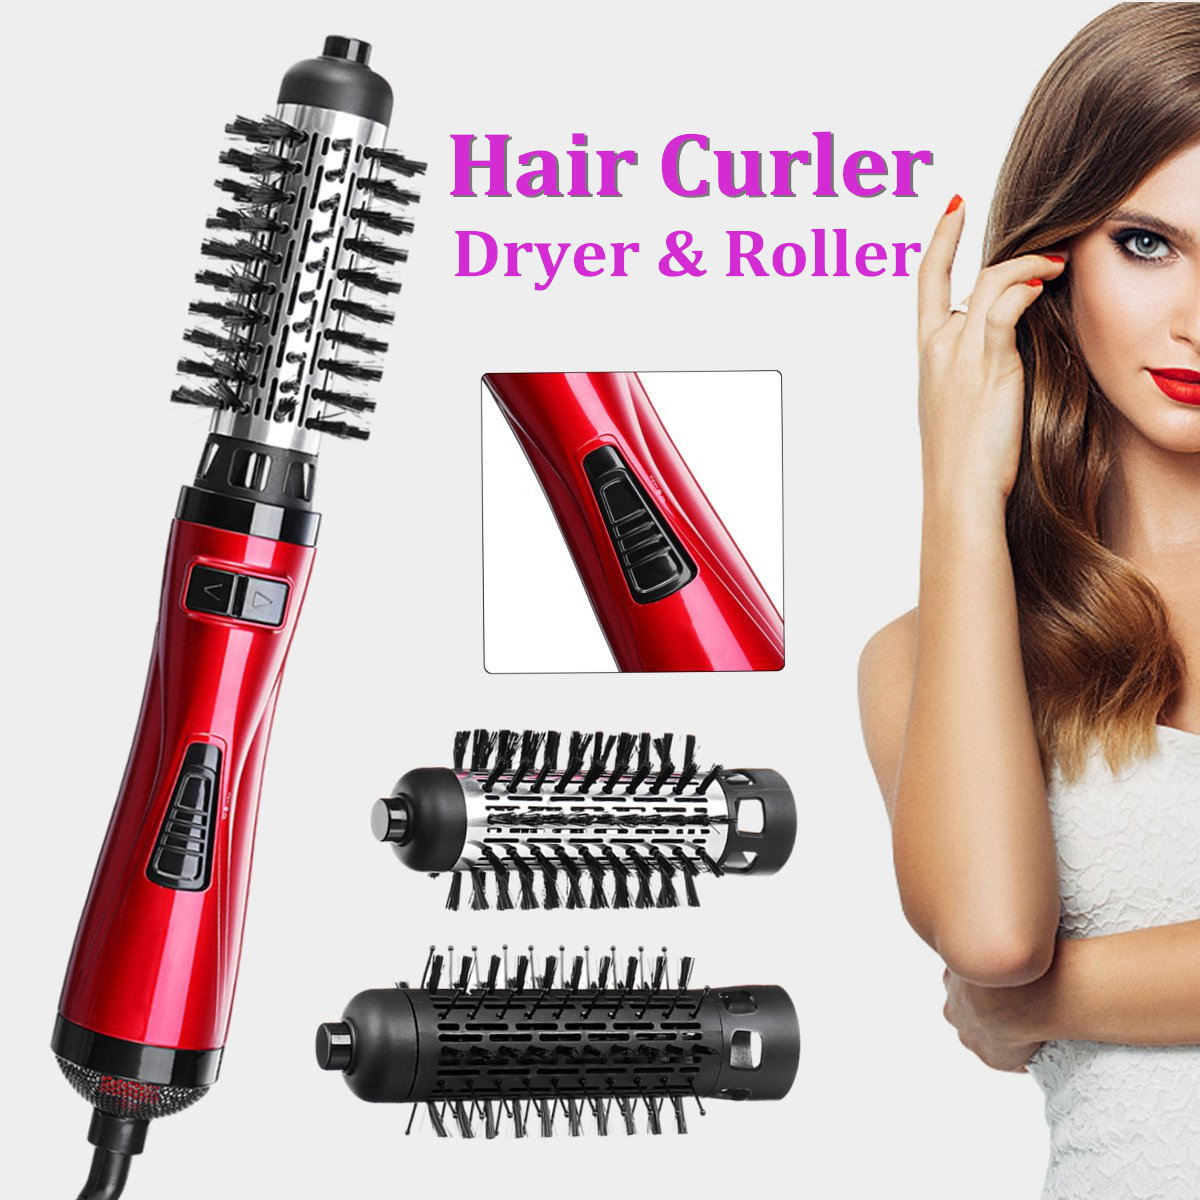 2 in 1 Hair Curling Brush Auto Hot Salon Styling Rod Dryer Roller Rotating Wand